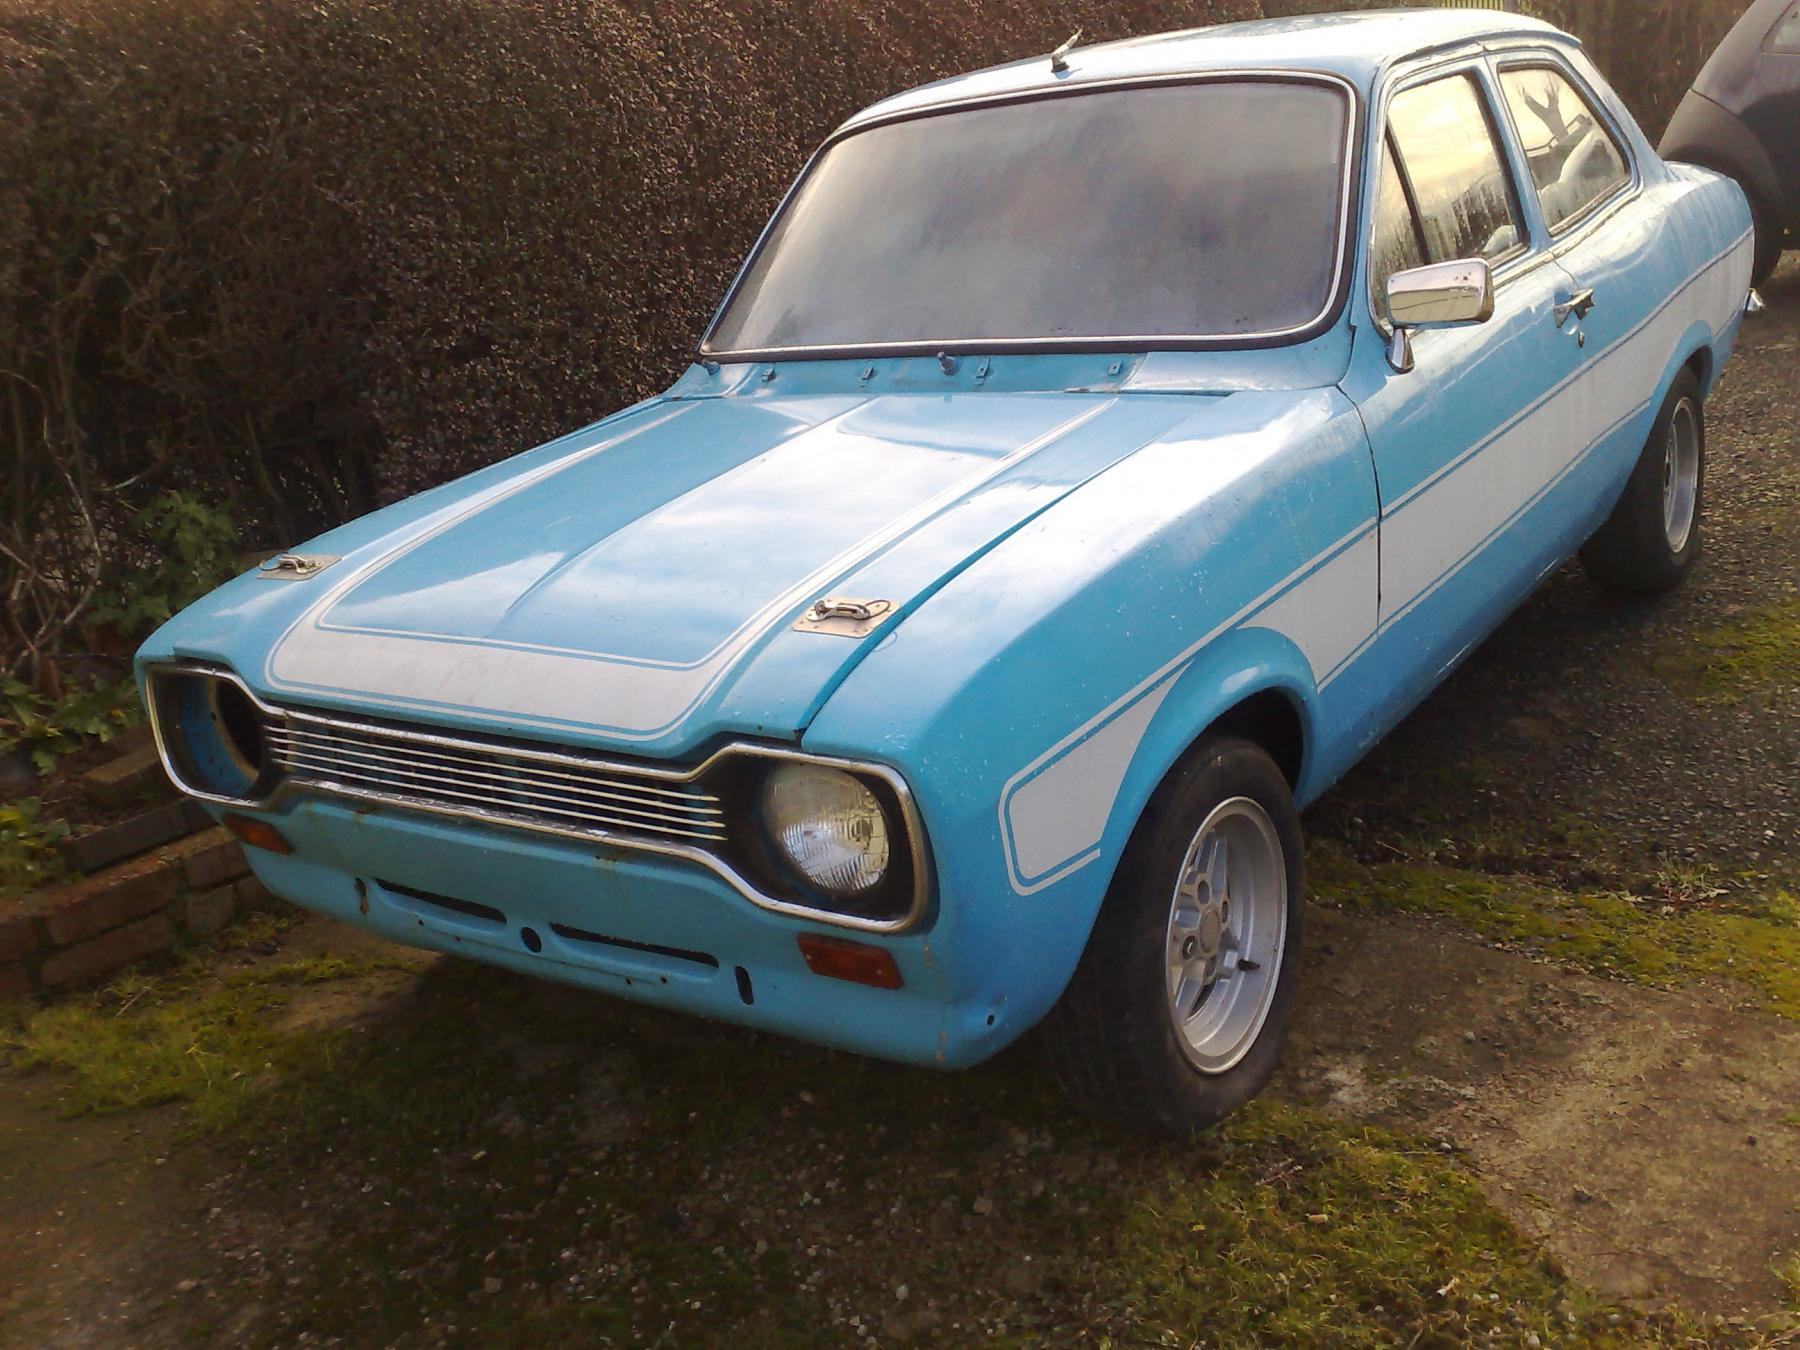 Escort mk1 2dr 2.0 Vauxhall XE for rally, race or track | Rally Cars ...